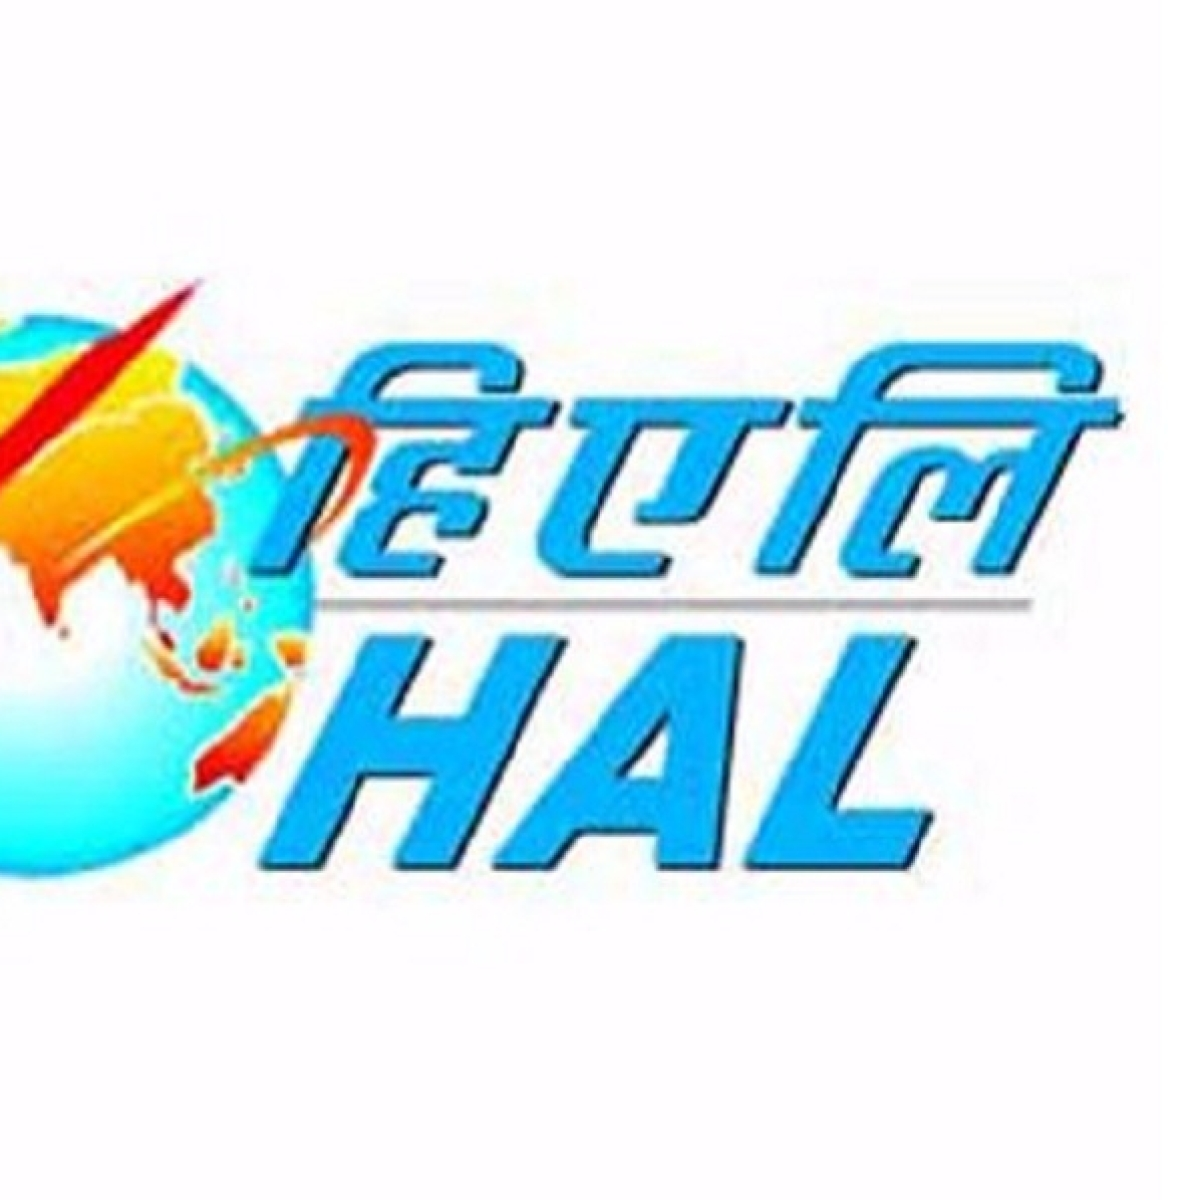 HAL shares plunge 12% as Centre proposes stake sale